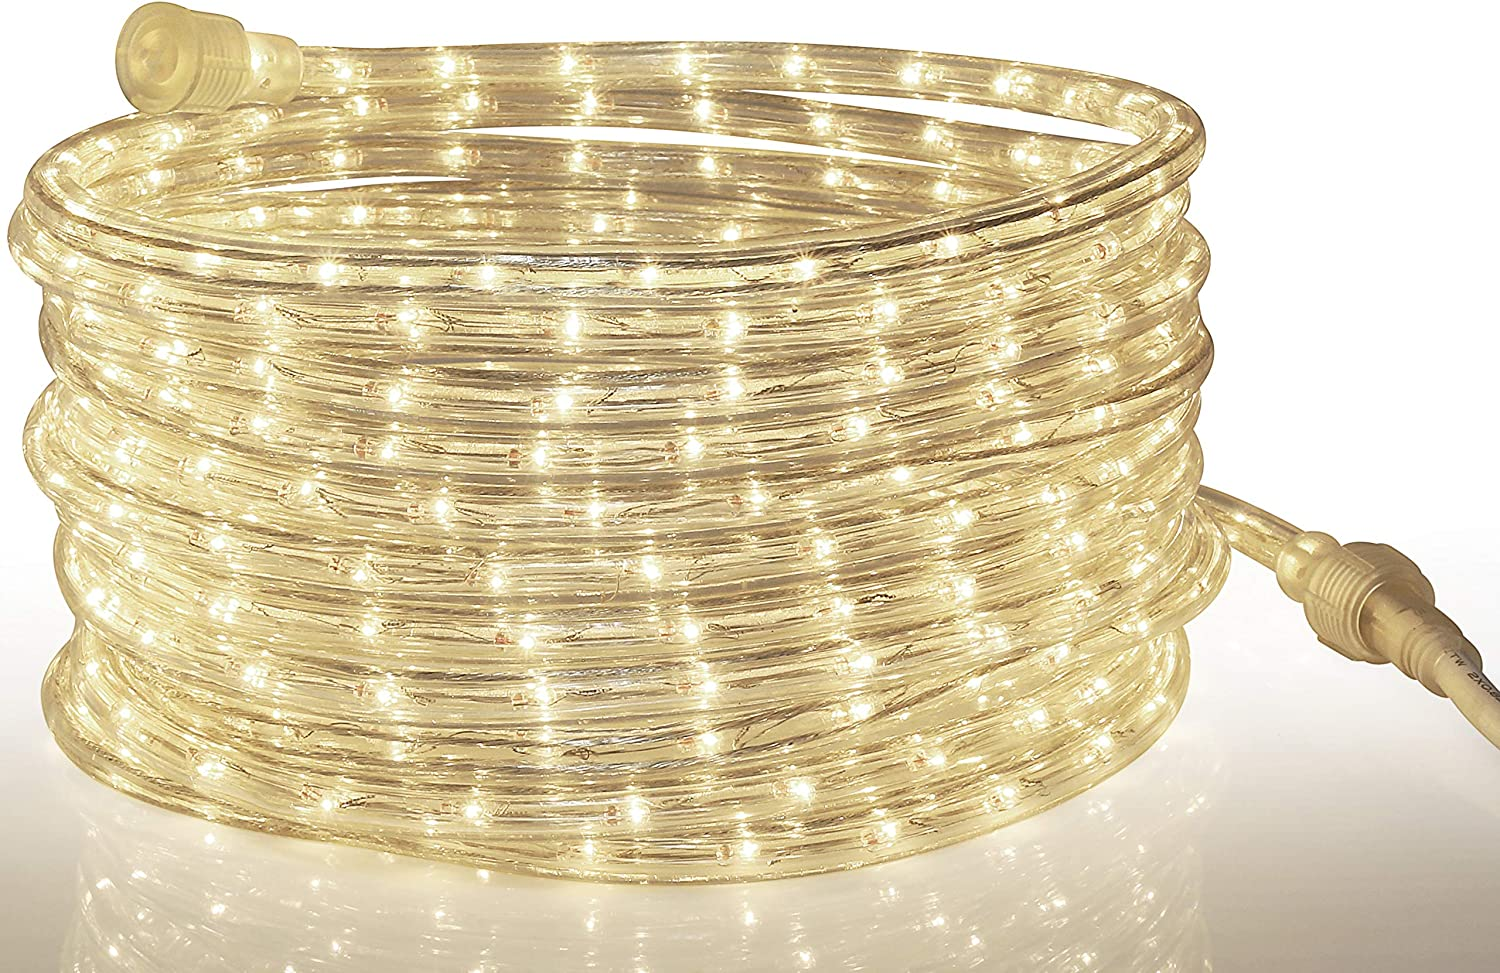 Tupkee LED Rope Light Warm-White - 24 7.3 Feet a Finally popular brand for m Quality inspection Indoor